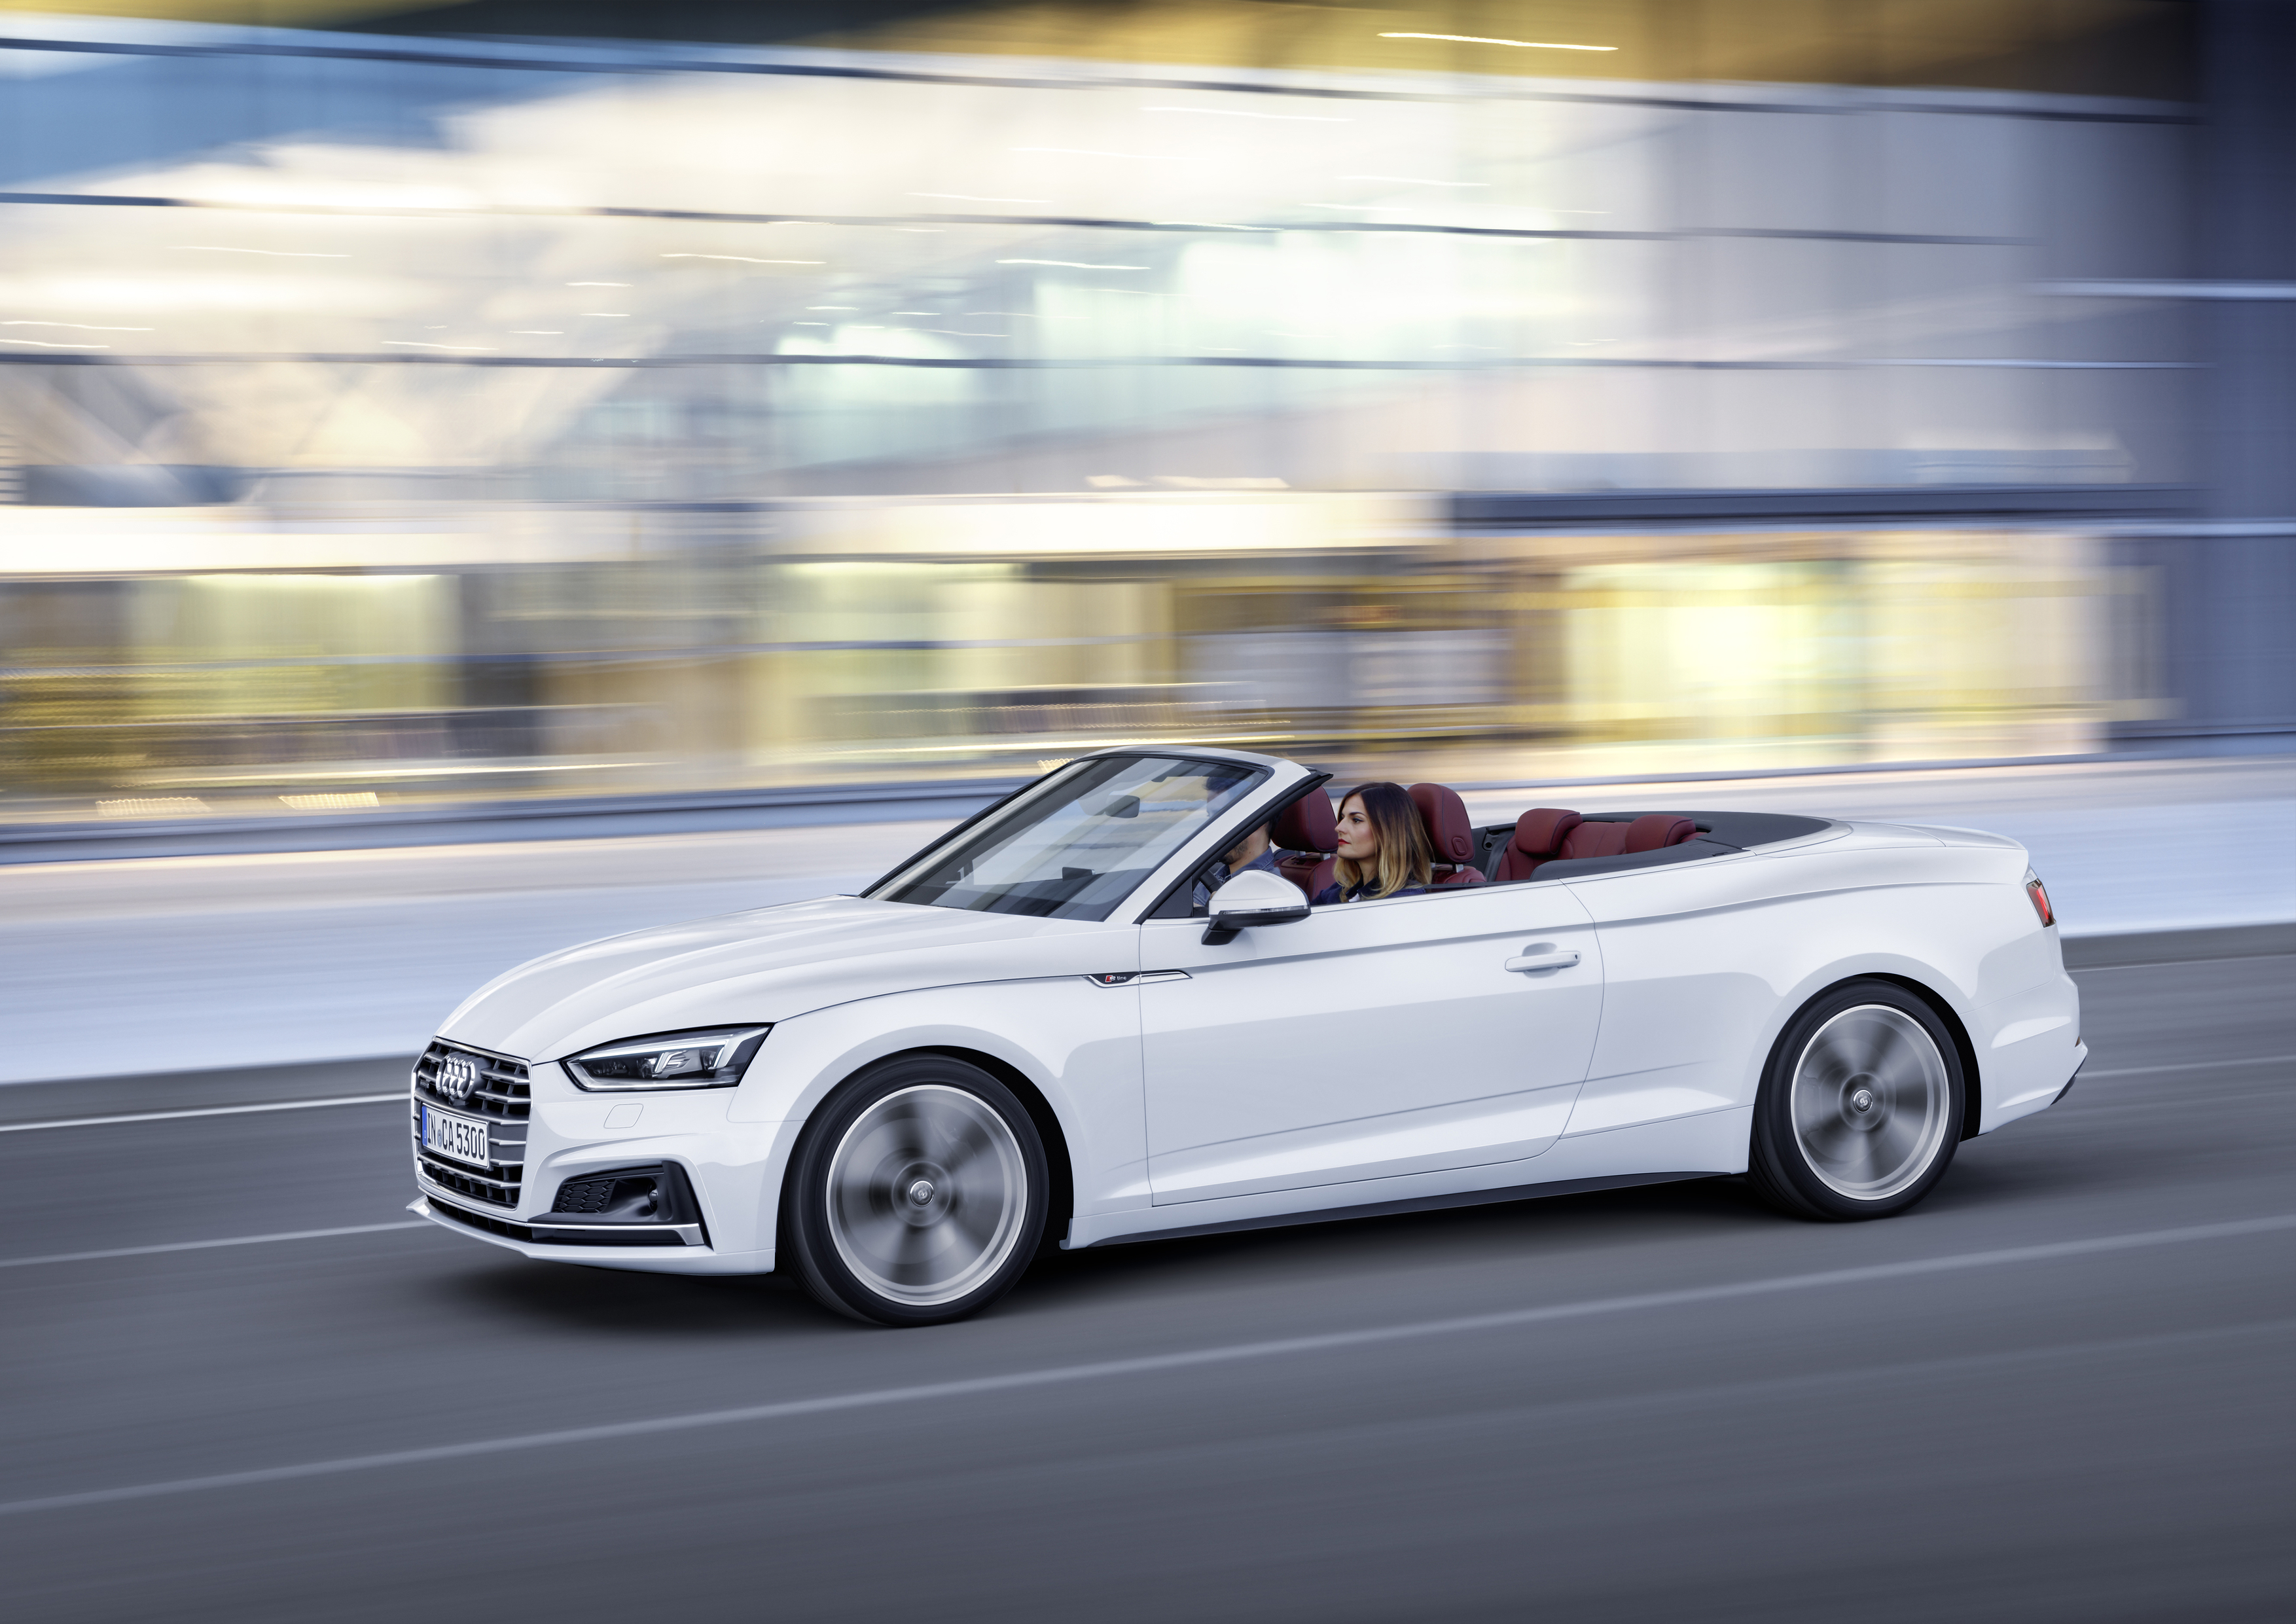 2017 Audi A5 And S5 Cabriolet The Soft Top Revealed